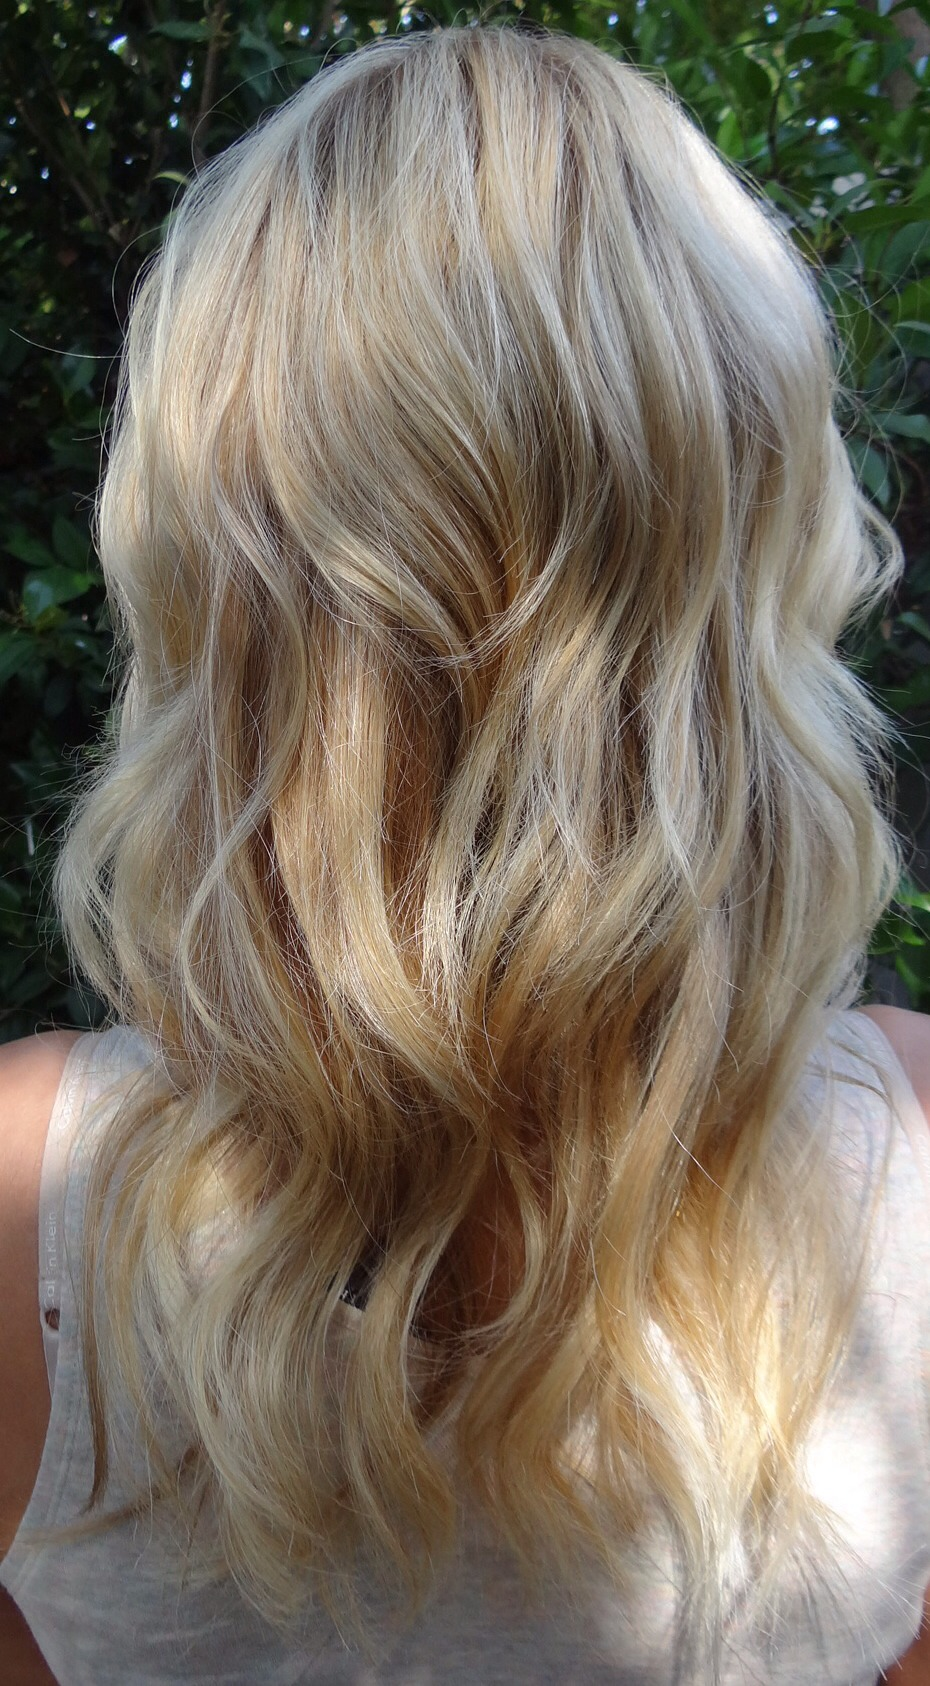 How To Lighten Blonde Hair Naturally Without Sun